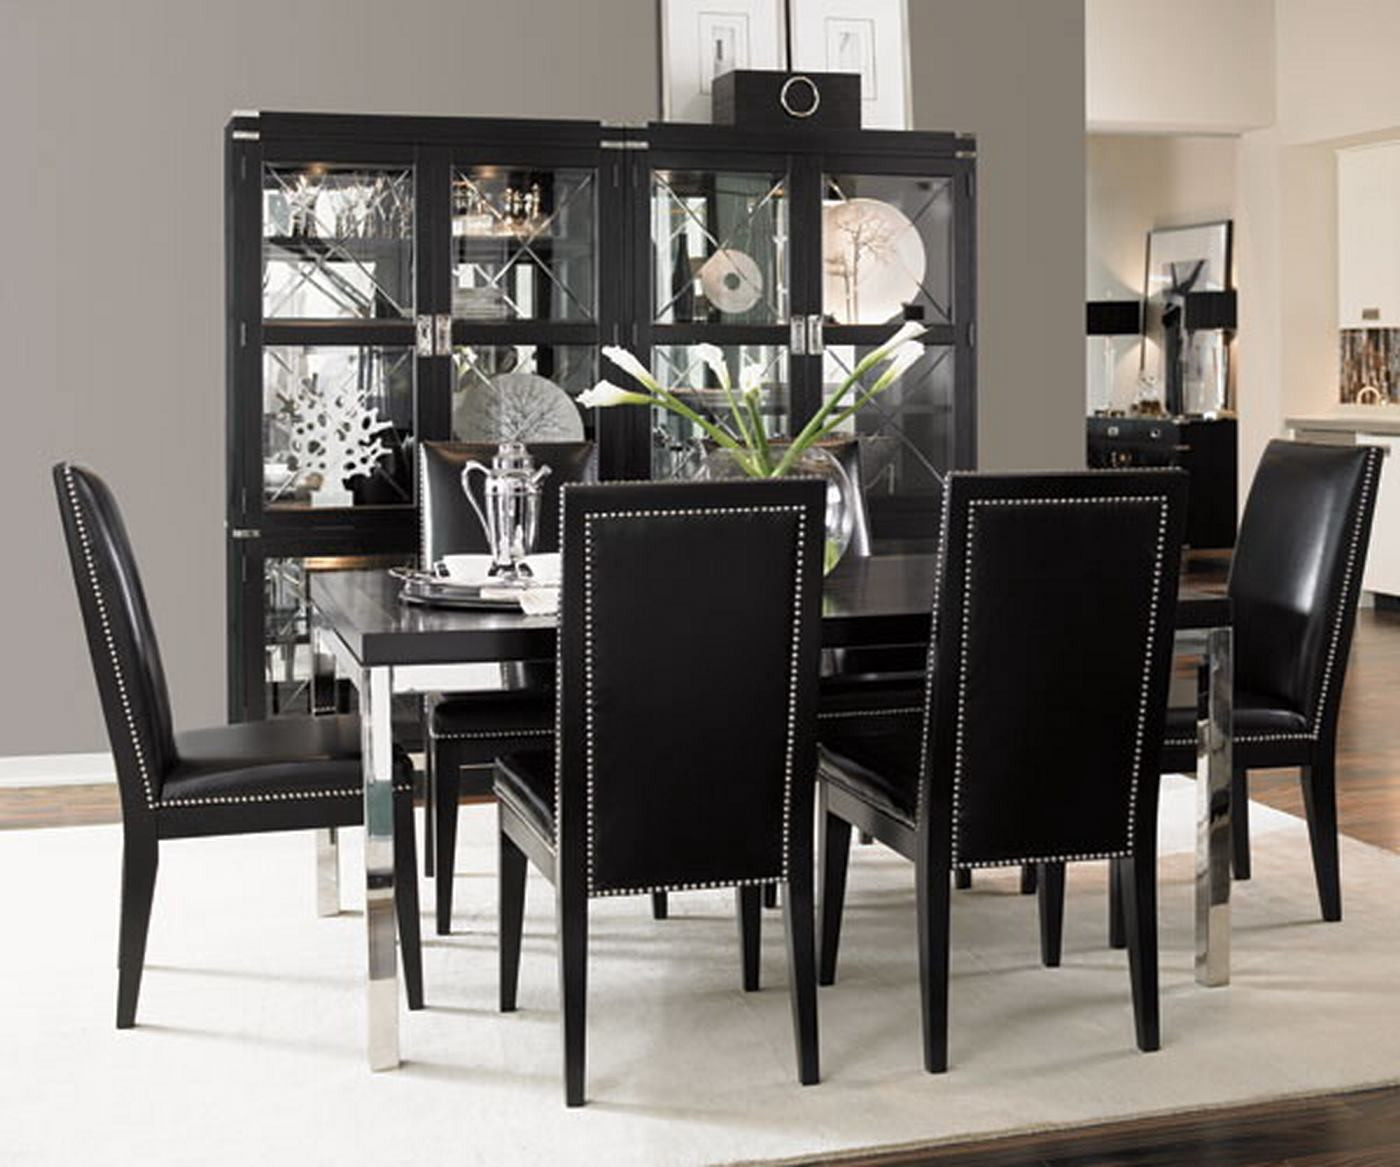 Best ideas about Black Dining Room Chairs . Save or Pin Simple dining room with black table and black chairs with Now.